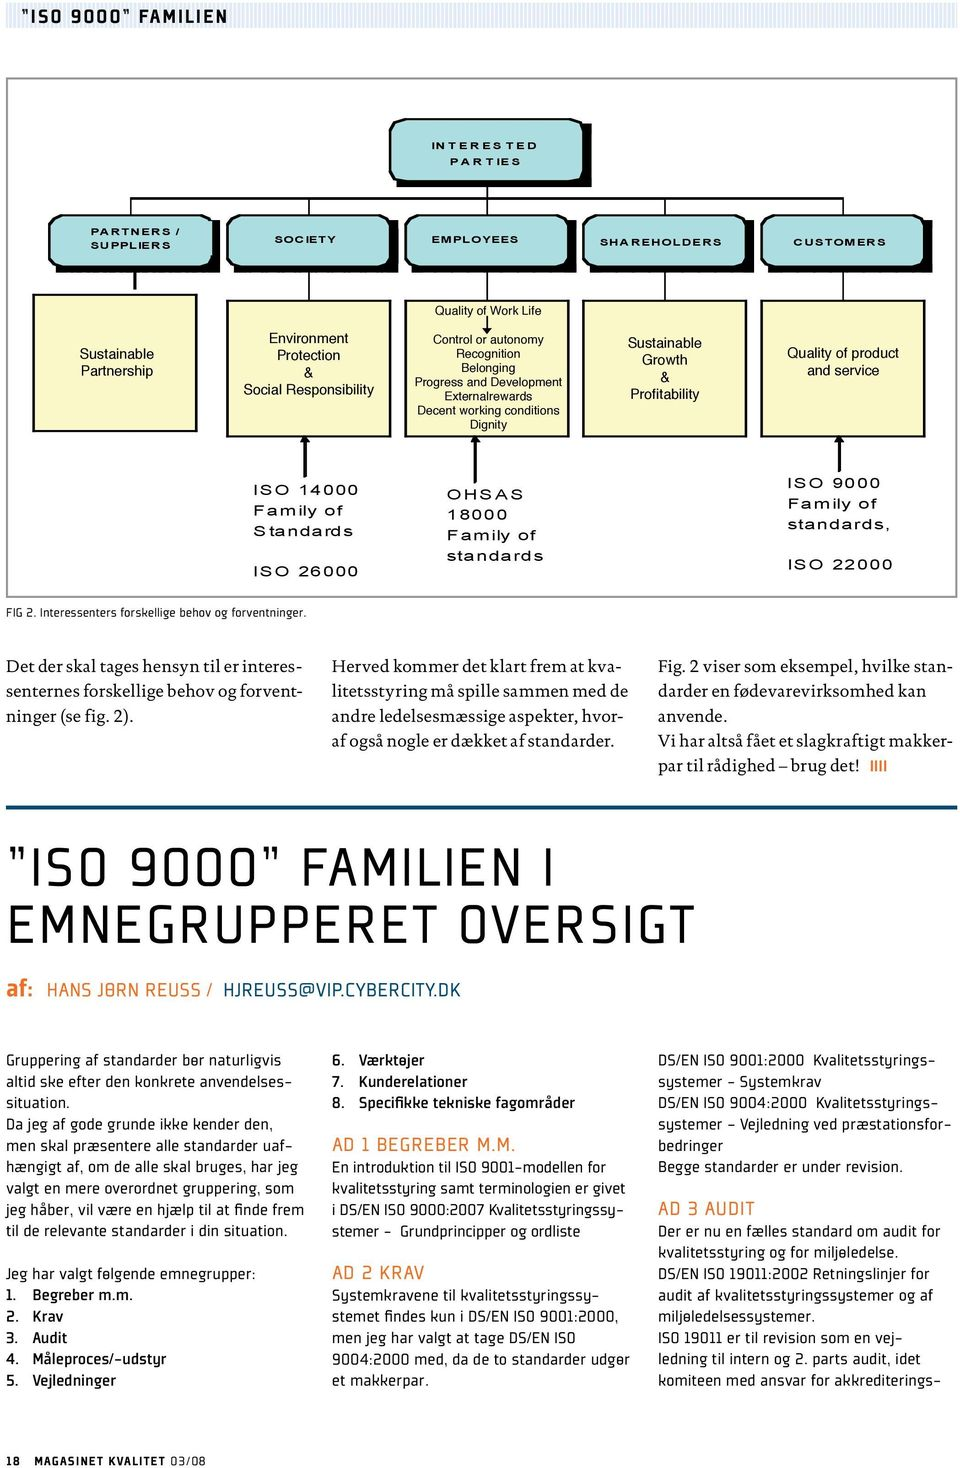 ISO 14000 Fam ily of S tandards ISO 26000 OHS AS 18000 Fam ily of standards ISO 9000 Family of standards, ISO 22000 FIG 2. Interessenters forskellige behov og forventninger.